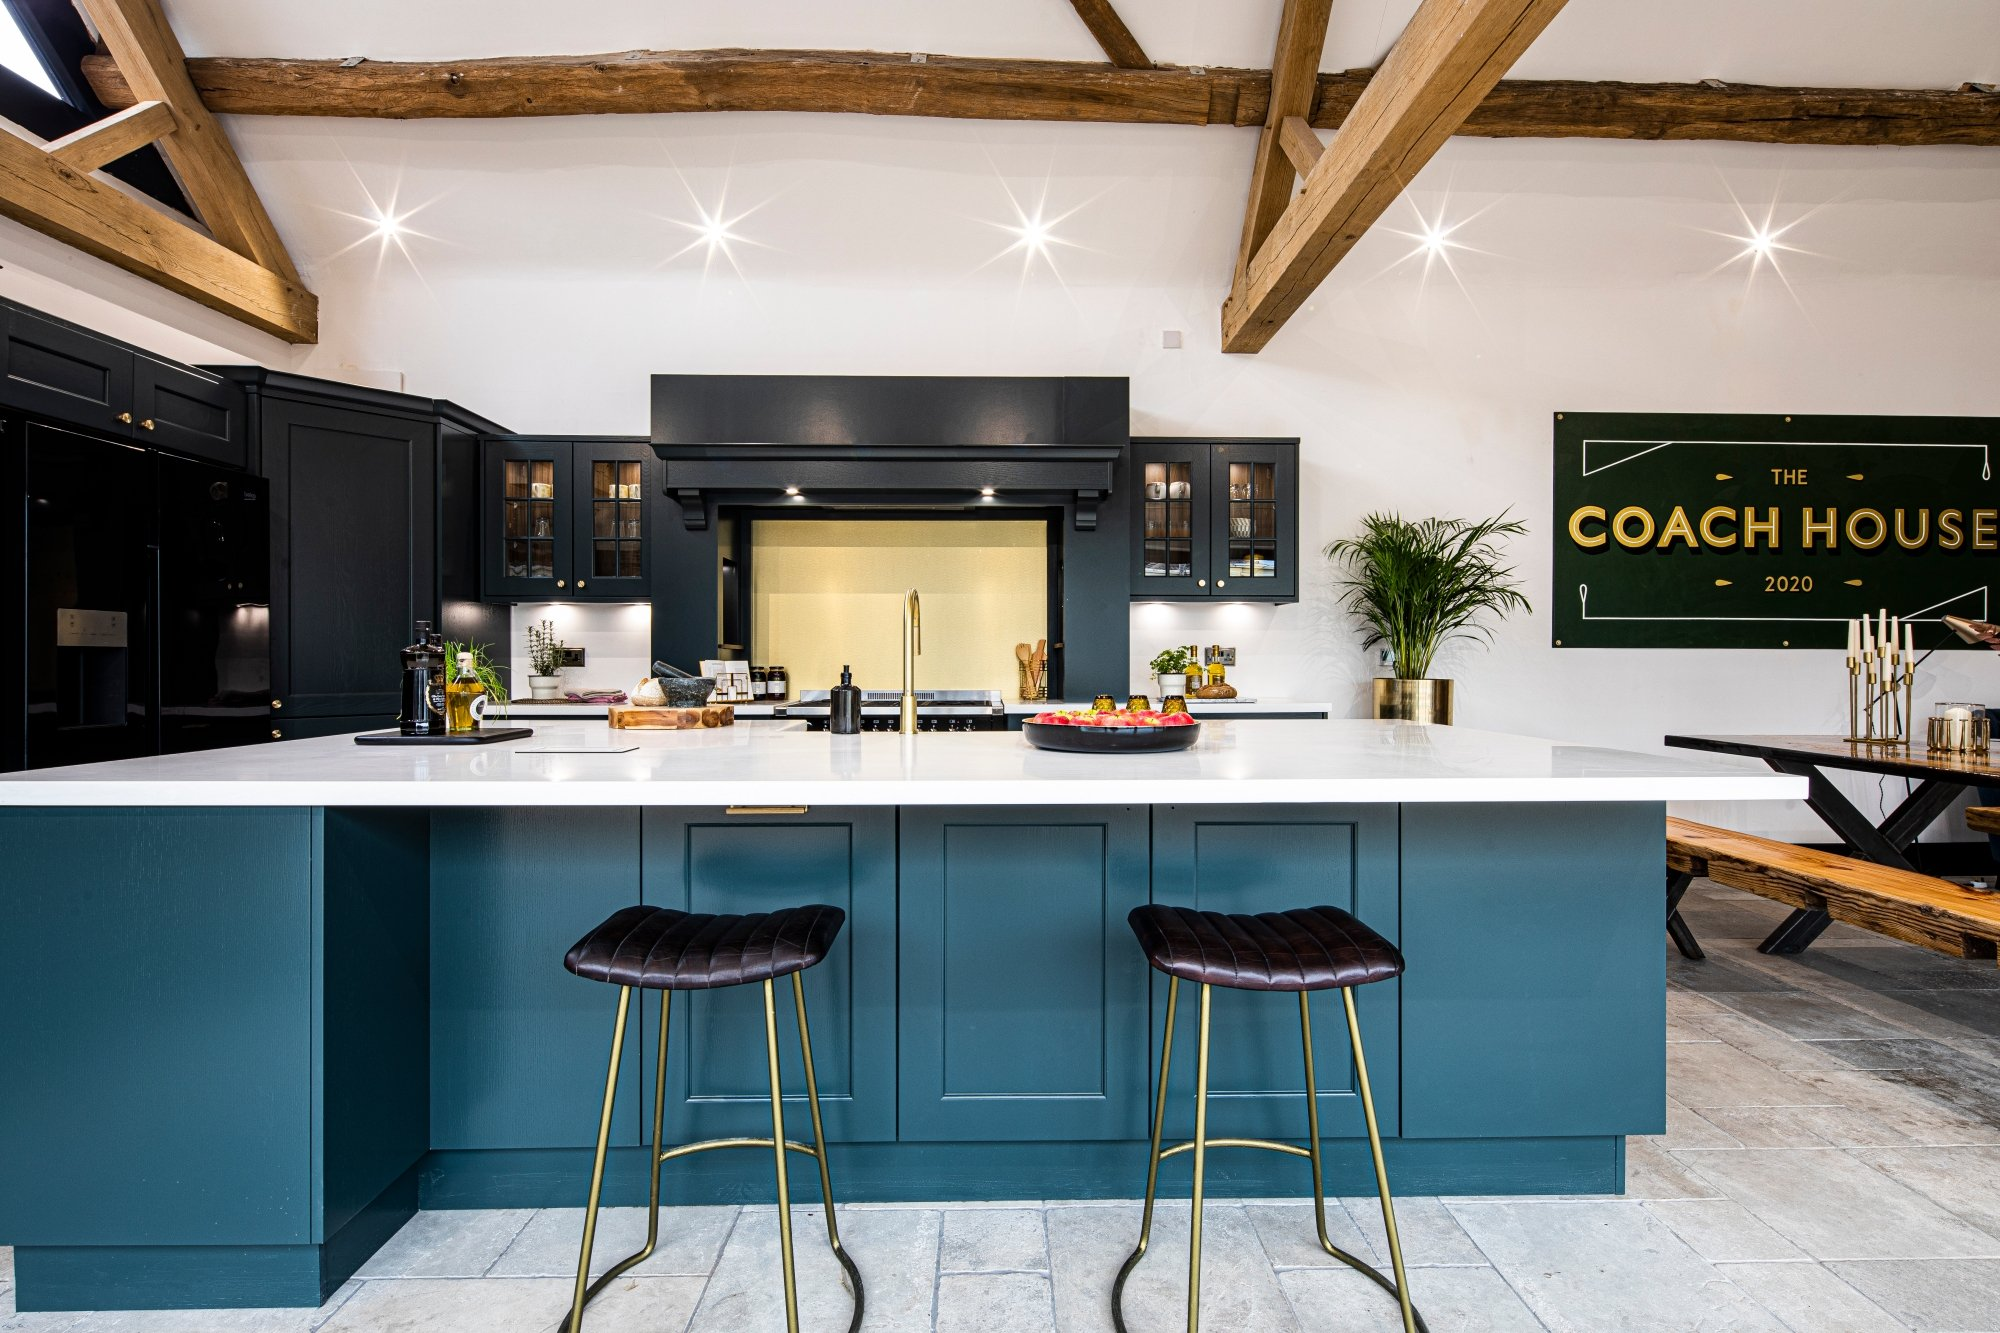 George Clarkes' Remarkable Renovations: The Coach House Kitchen